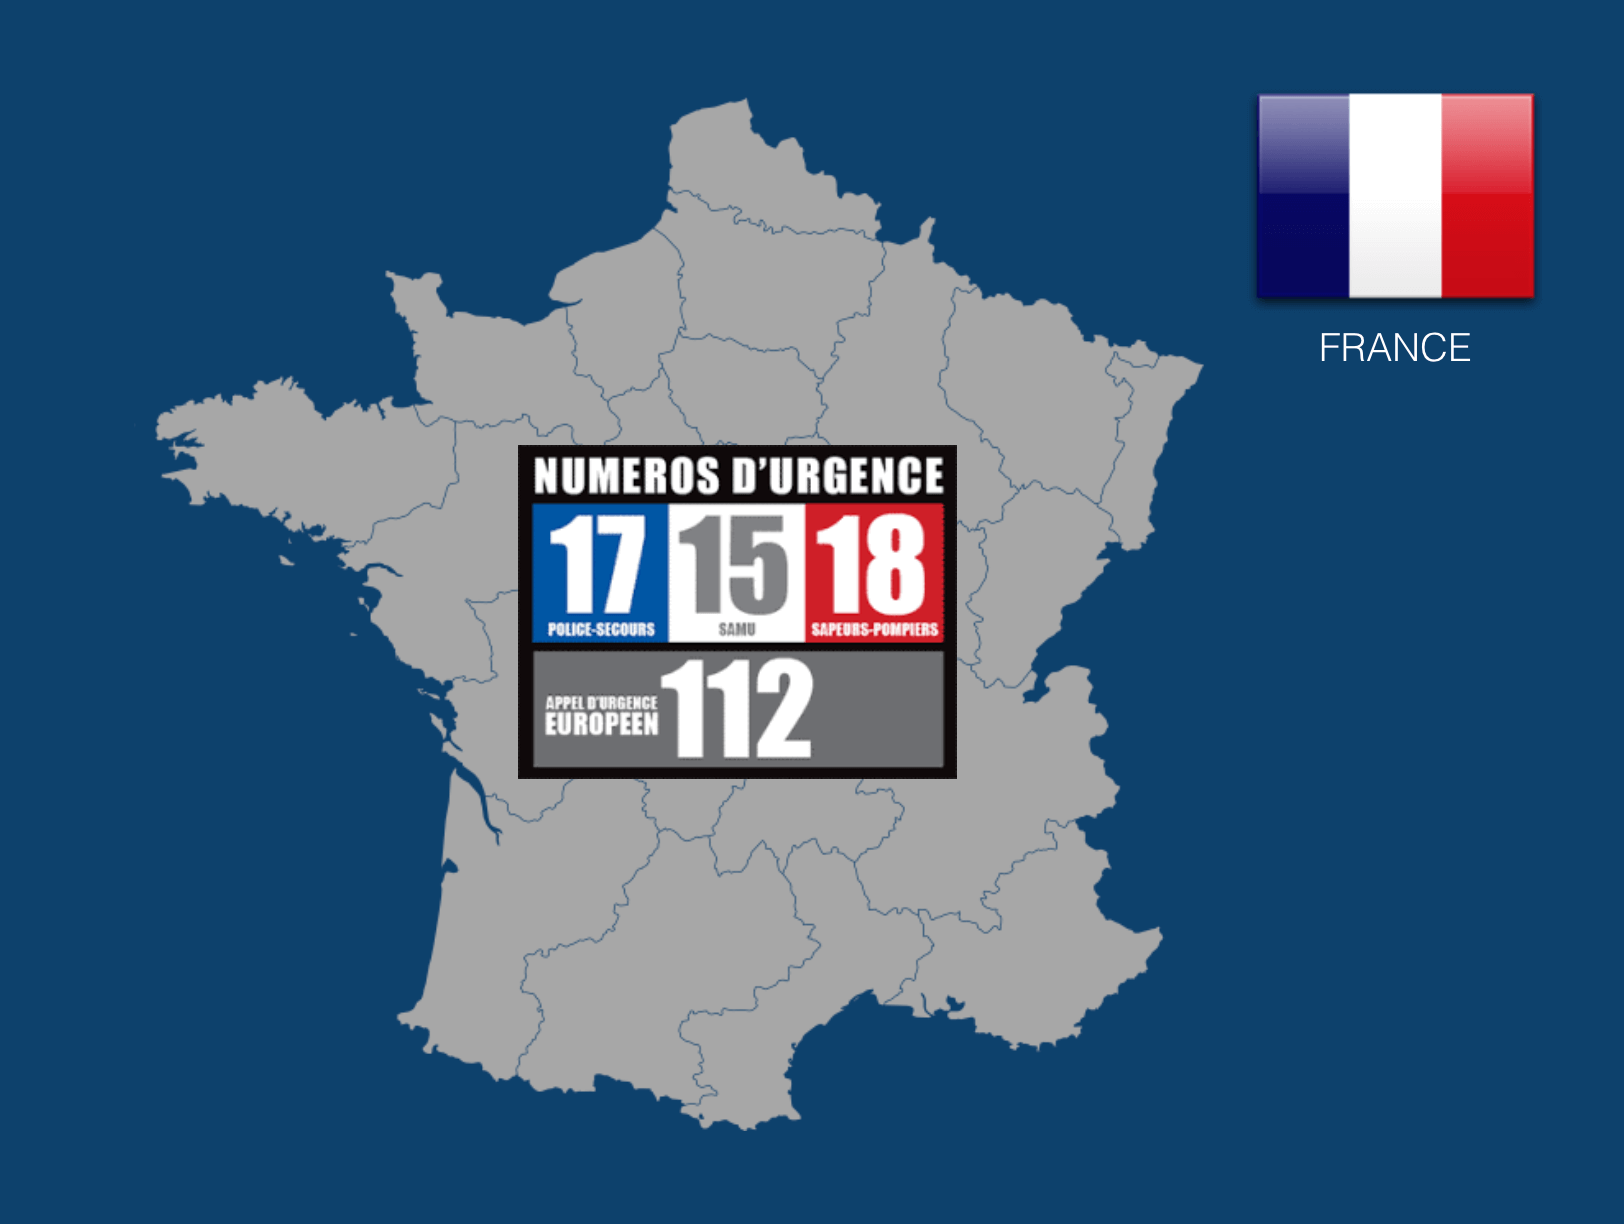 France: Ambulance and Emergency Medical Services